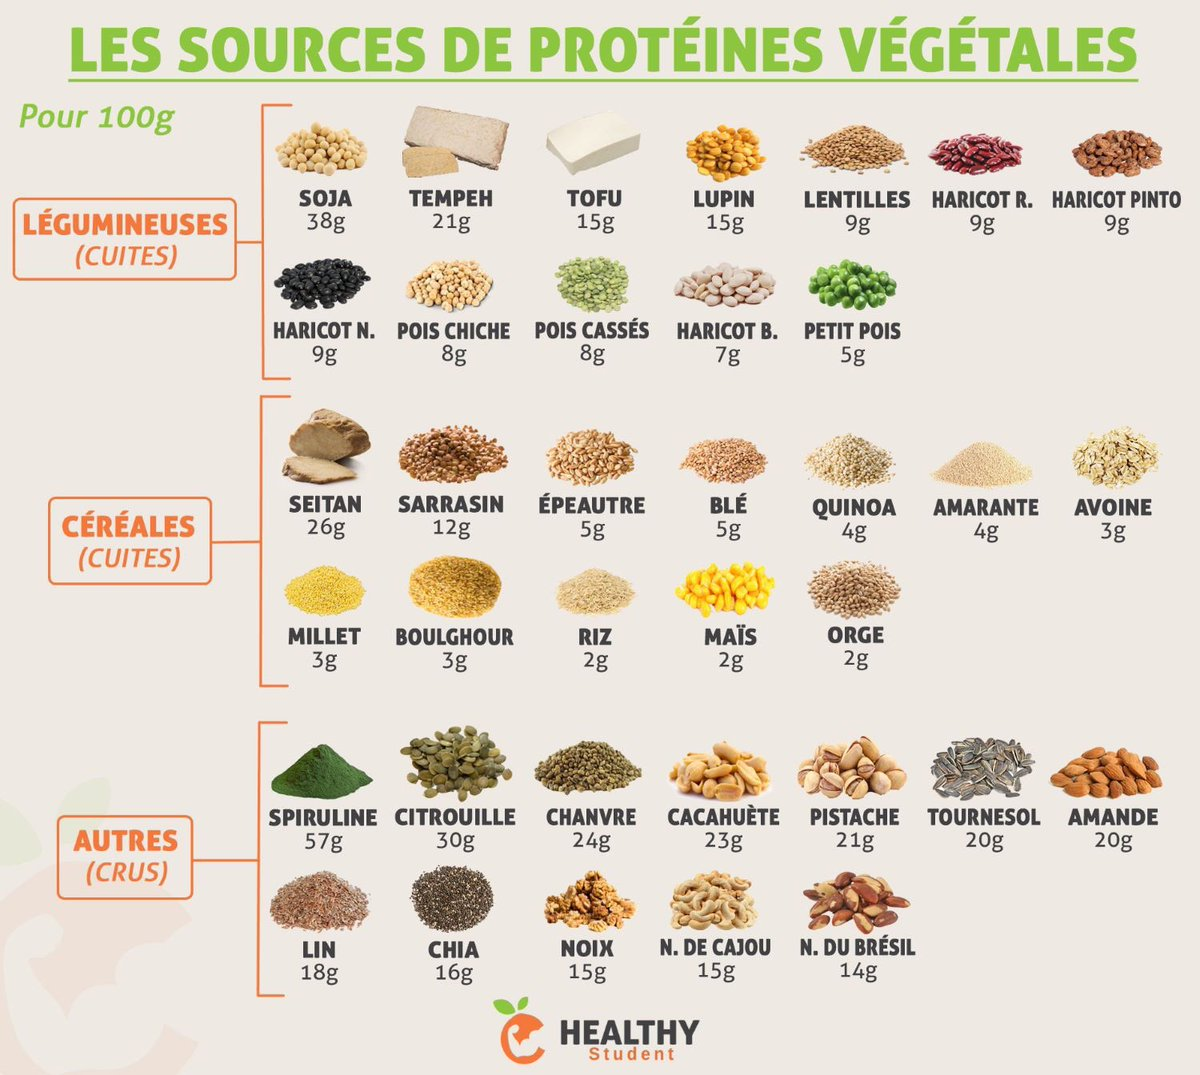 Healthy student on twitter quelques sources de prot ines v g tales protein vegan - Liste des aliments riches en fer ...